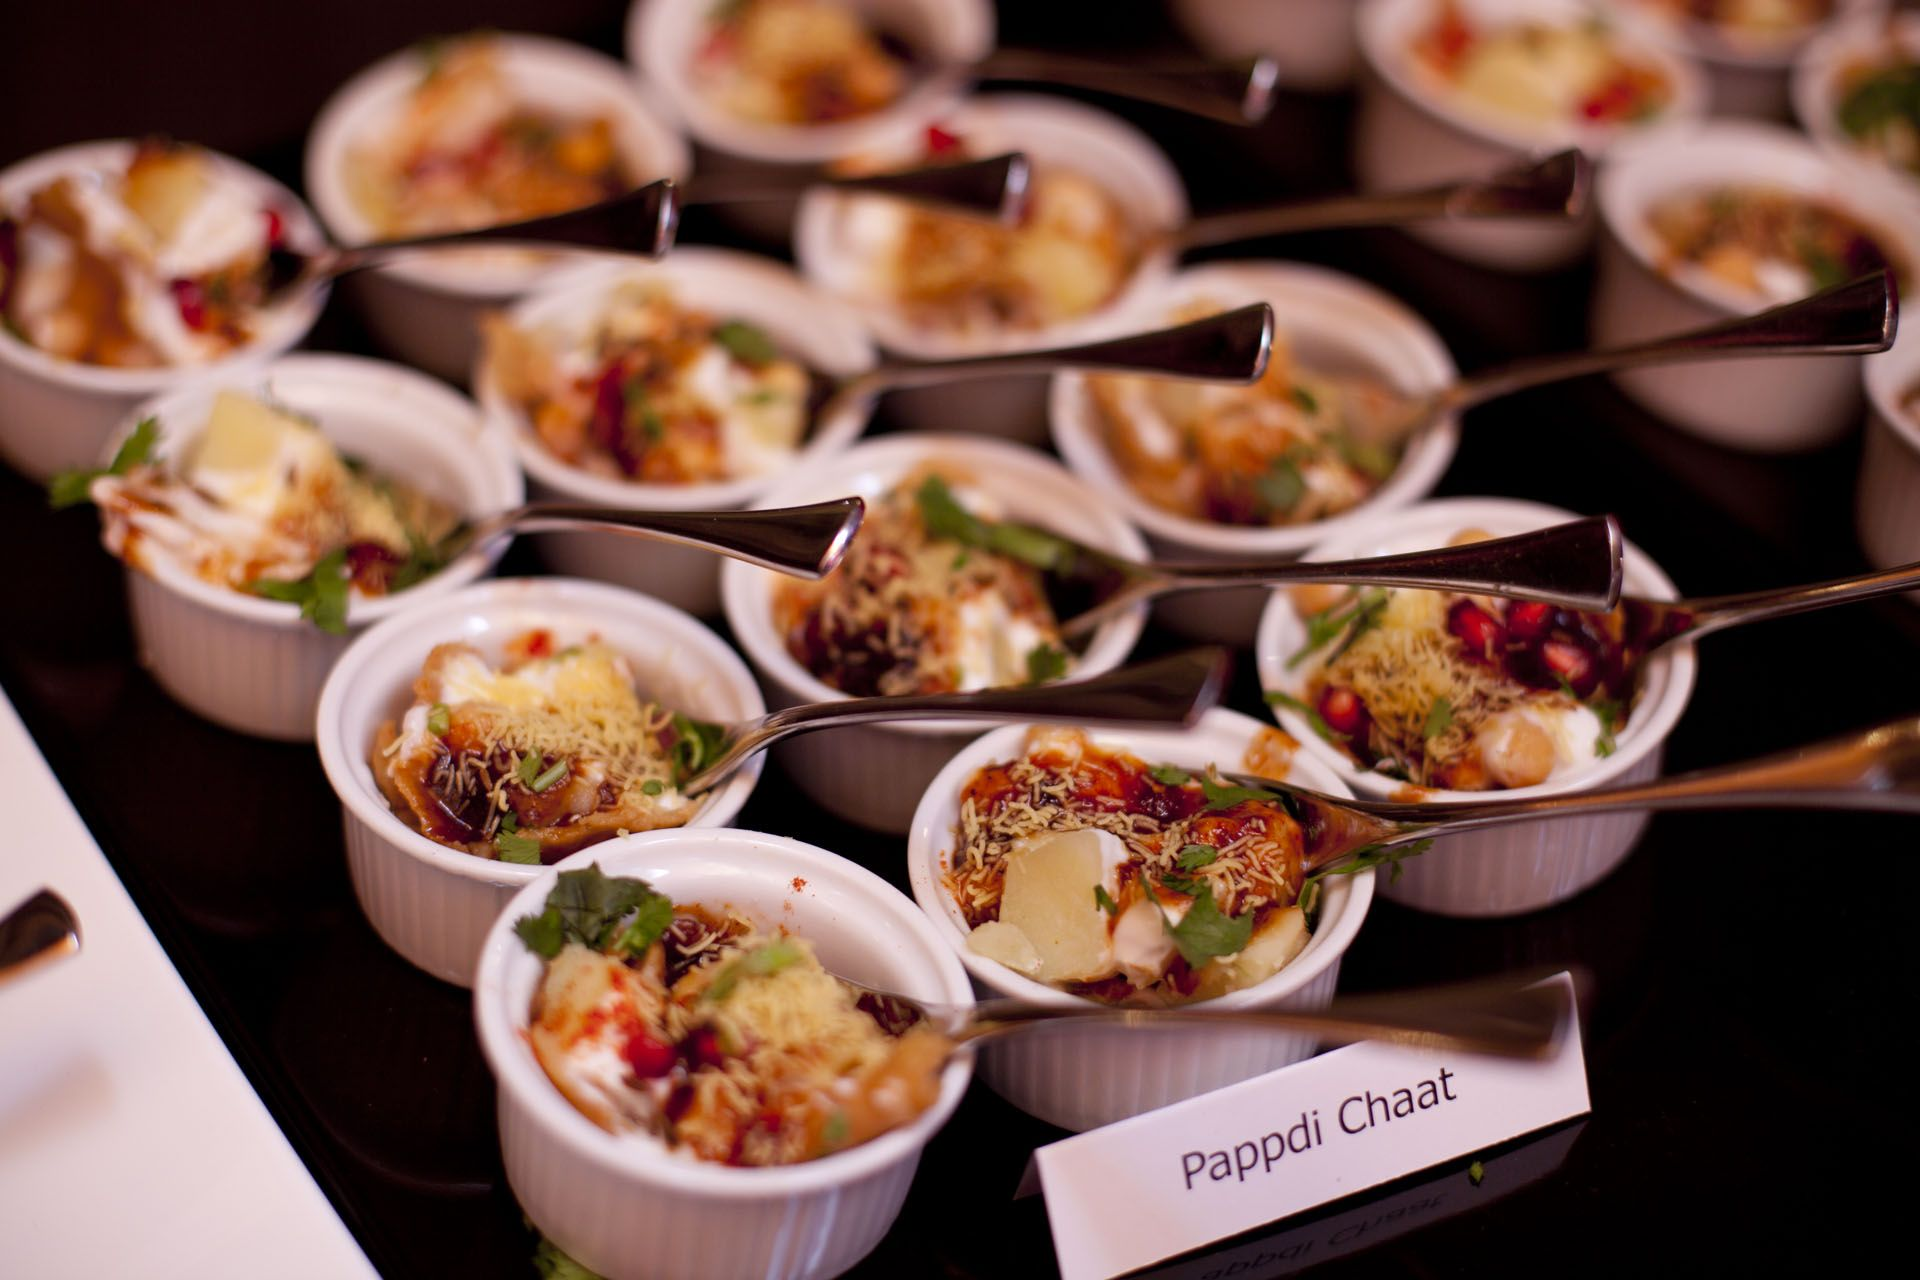 Pappadi chaat canapes weddingfood for Canape menu ideas